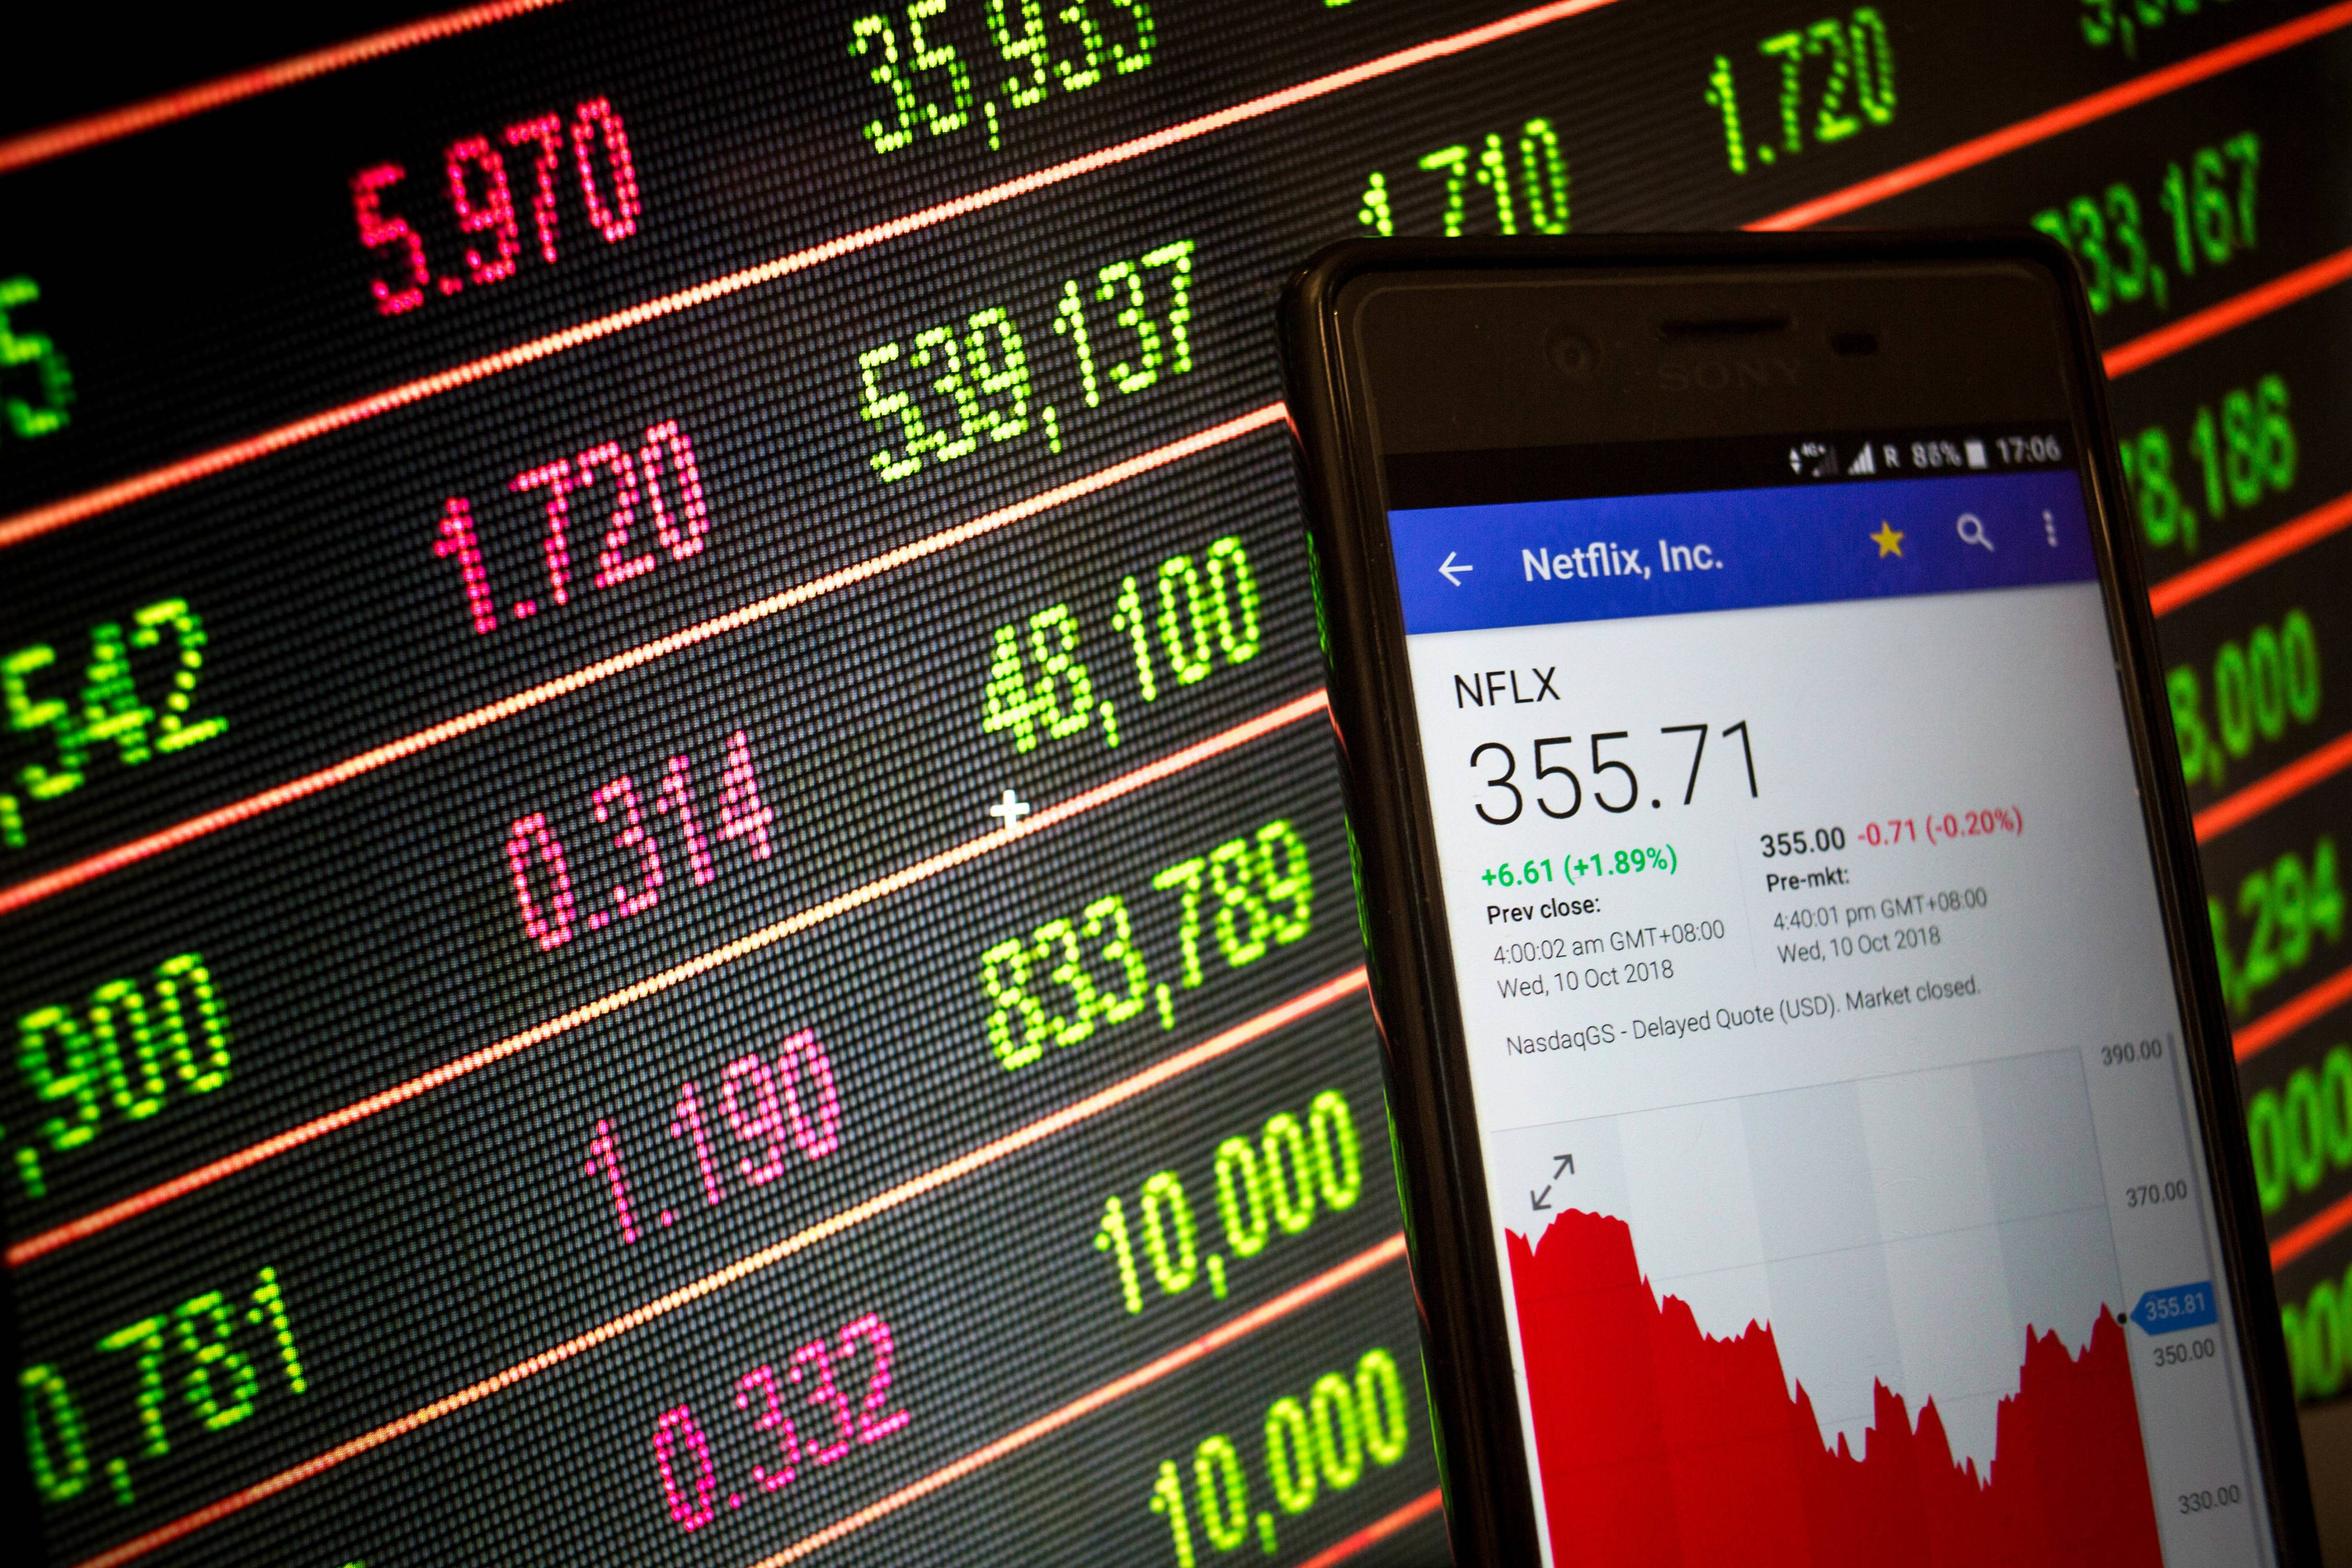 A smartphone displays the Netflix, Inc. market value on the